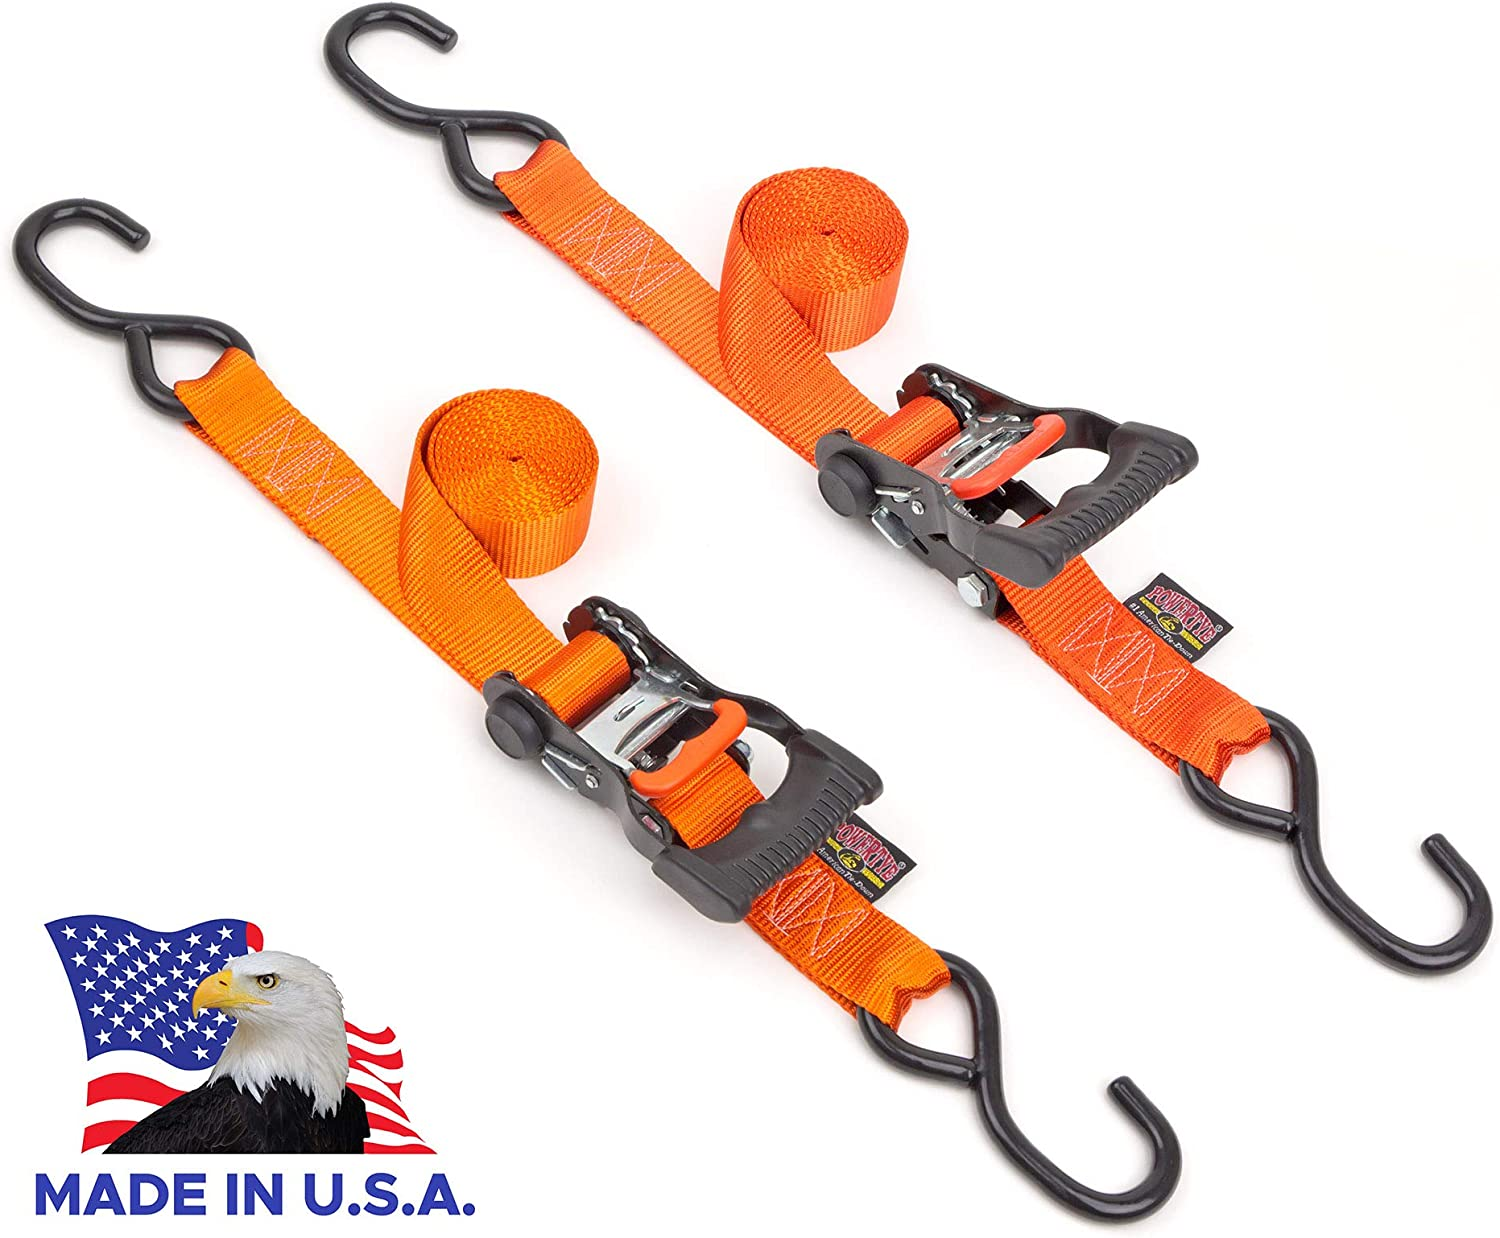 Powertye 1½in x 7ft Ergonomic Locking Ratchet Tie-Downs Made in USA with Heavy-Duty S-Hooks, Orange (Pair)